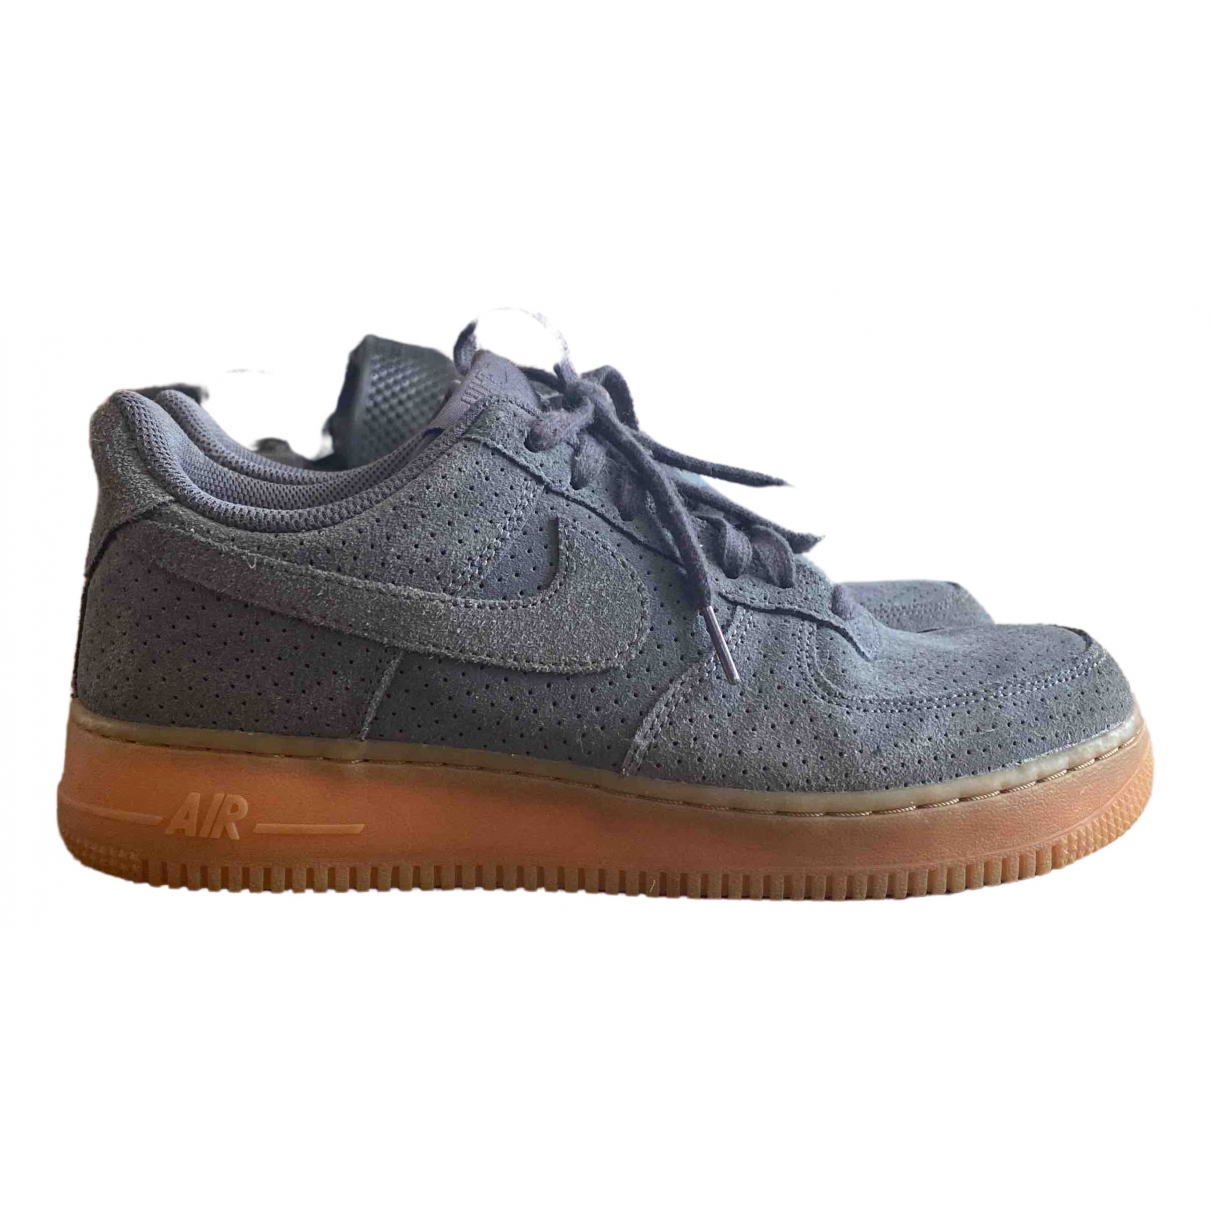 Nike Air Force 1 Grey Suede Trainers for Women 40 EU